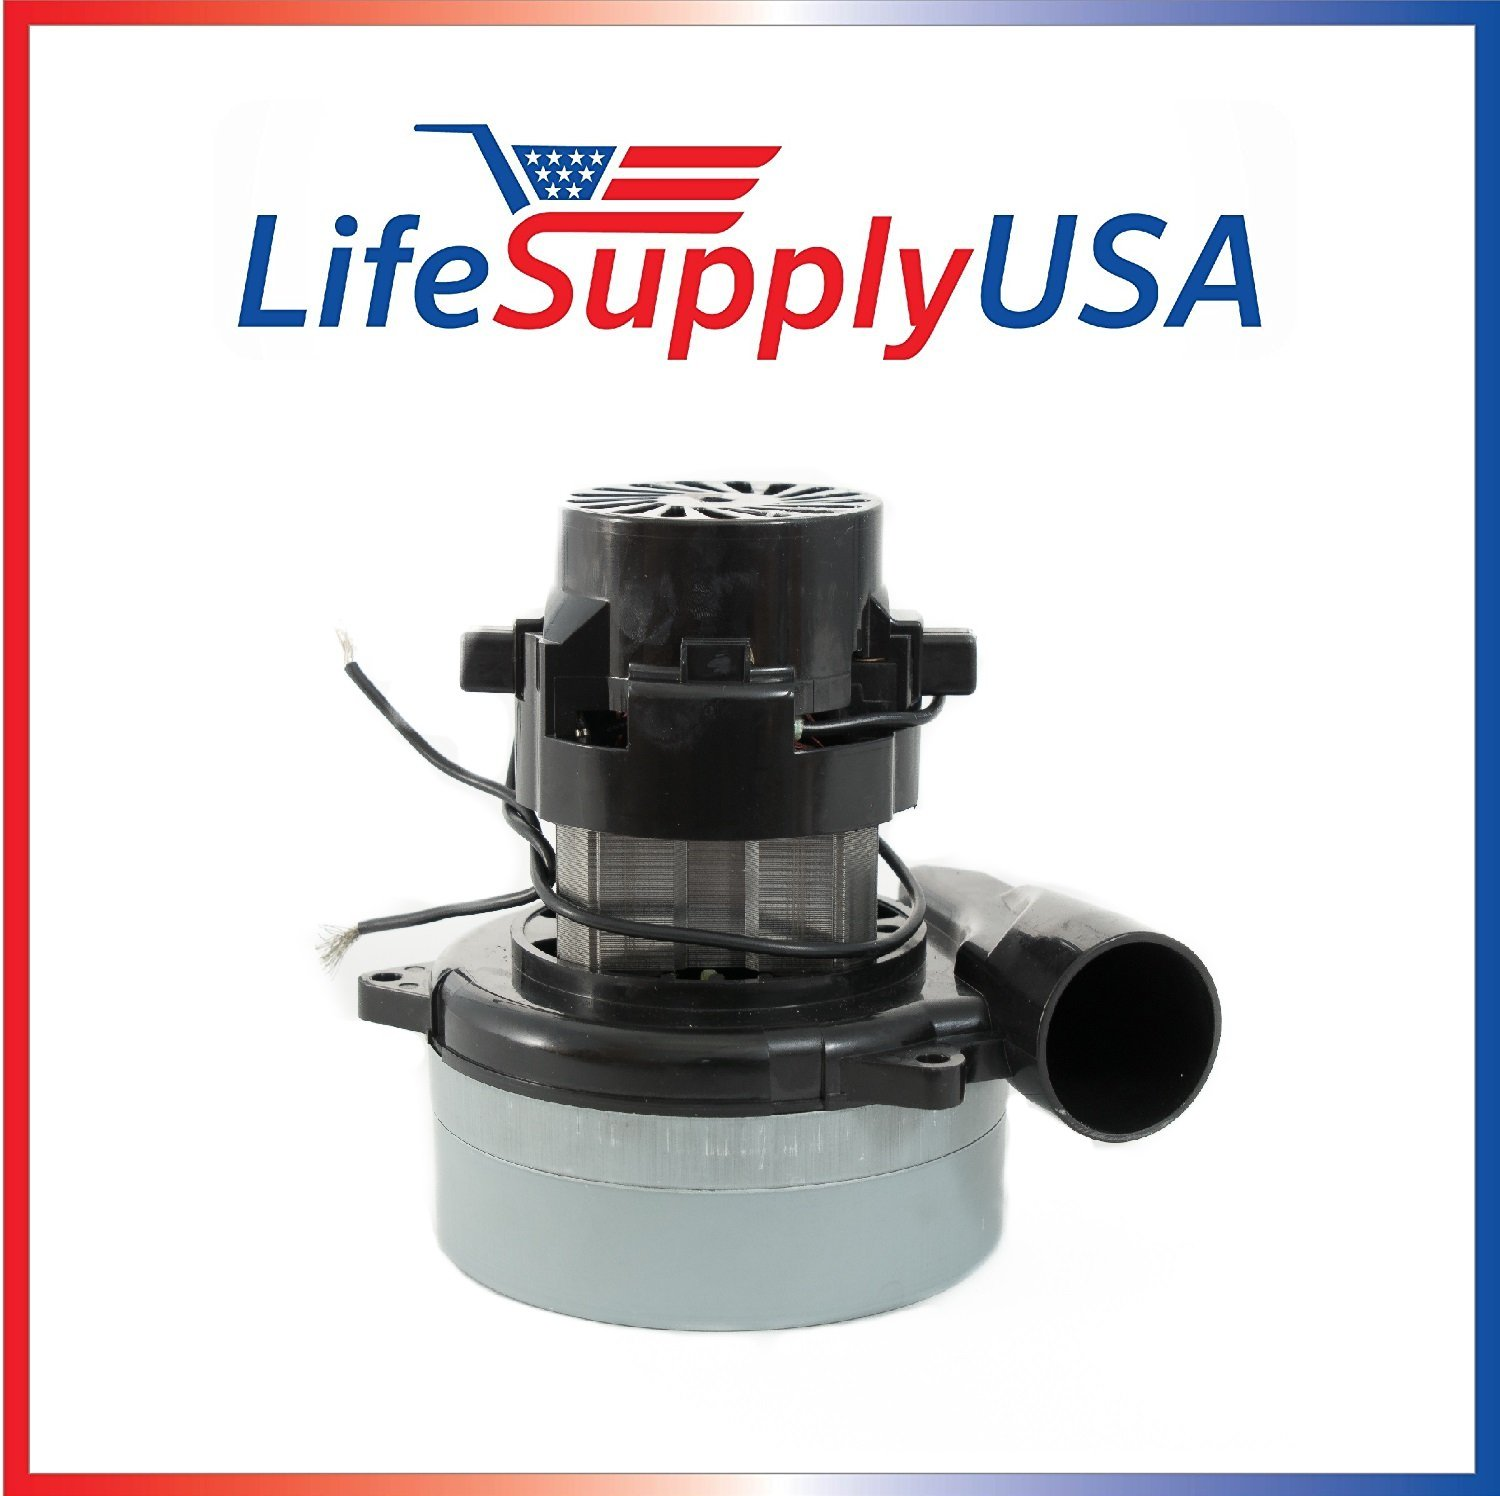 "LifeSupplyUSA New Central Vac Vacuum Motor with Wires Compatible with Most Brands 5.7"" 120 Volt 1300 Watts UL Listed Lux 119412 119414-00 Compatible with Electrolux"